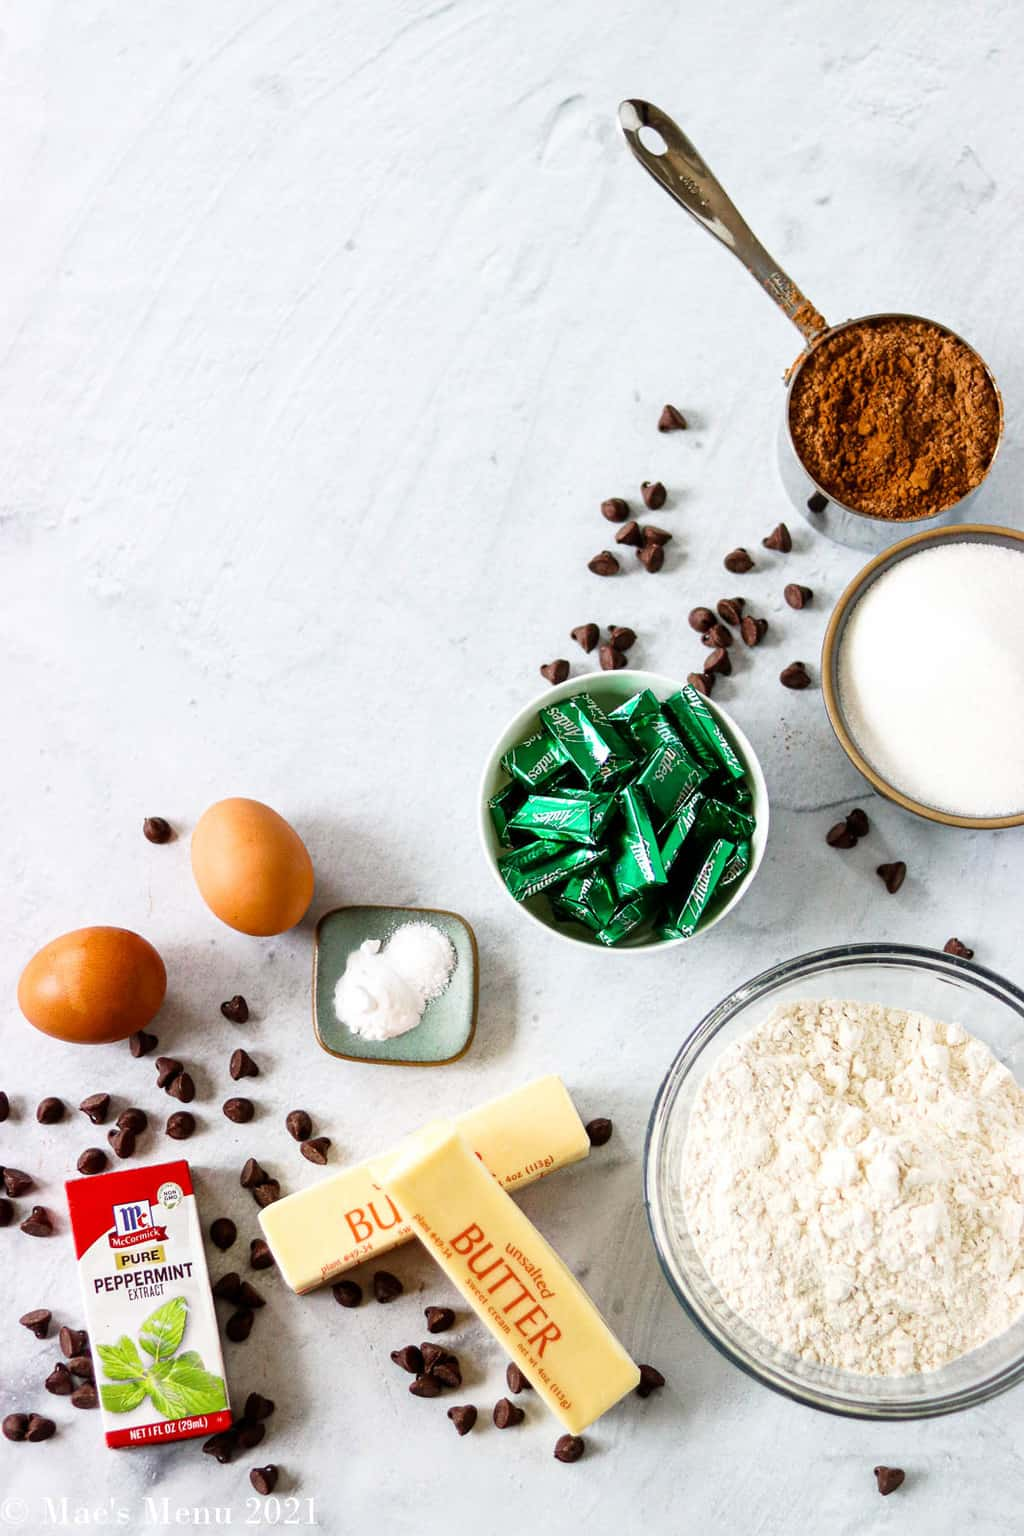 All the ingredients for andes chocolate mind cookies: andes mints, flour, sugar, cocoa, baking soda and salt, butter, pure peppermint extract, eggs, and chocolate chips